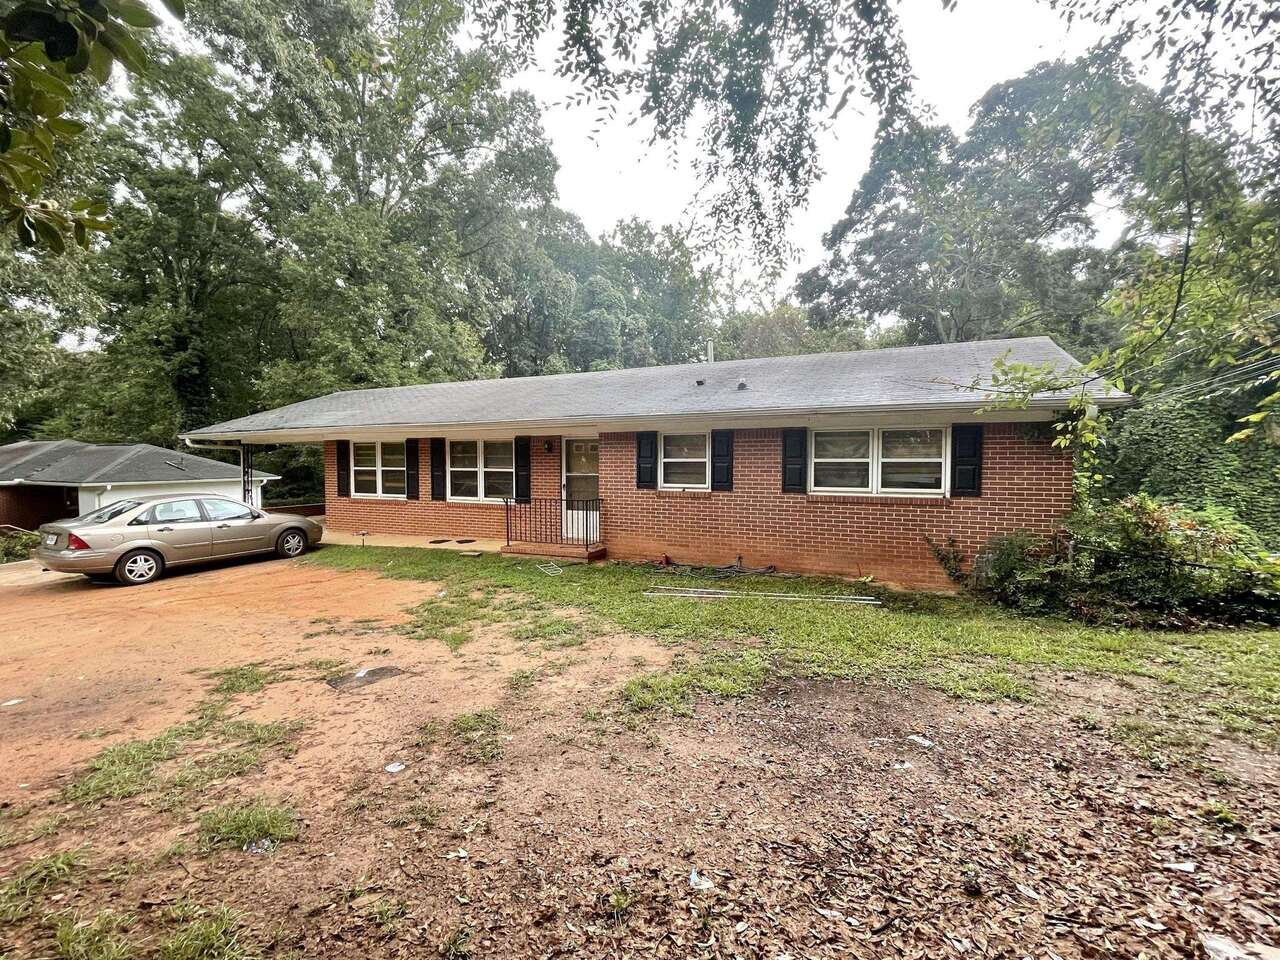 1314 N 9th St Ext Street, Griffin, GA 30223 - #: 9048885